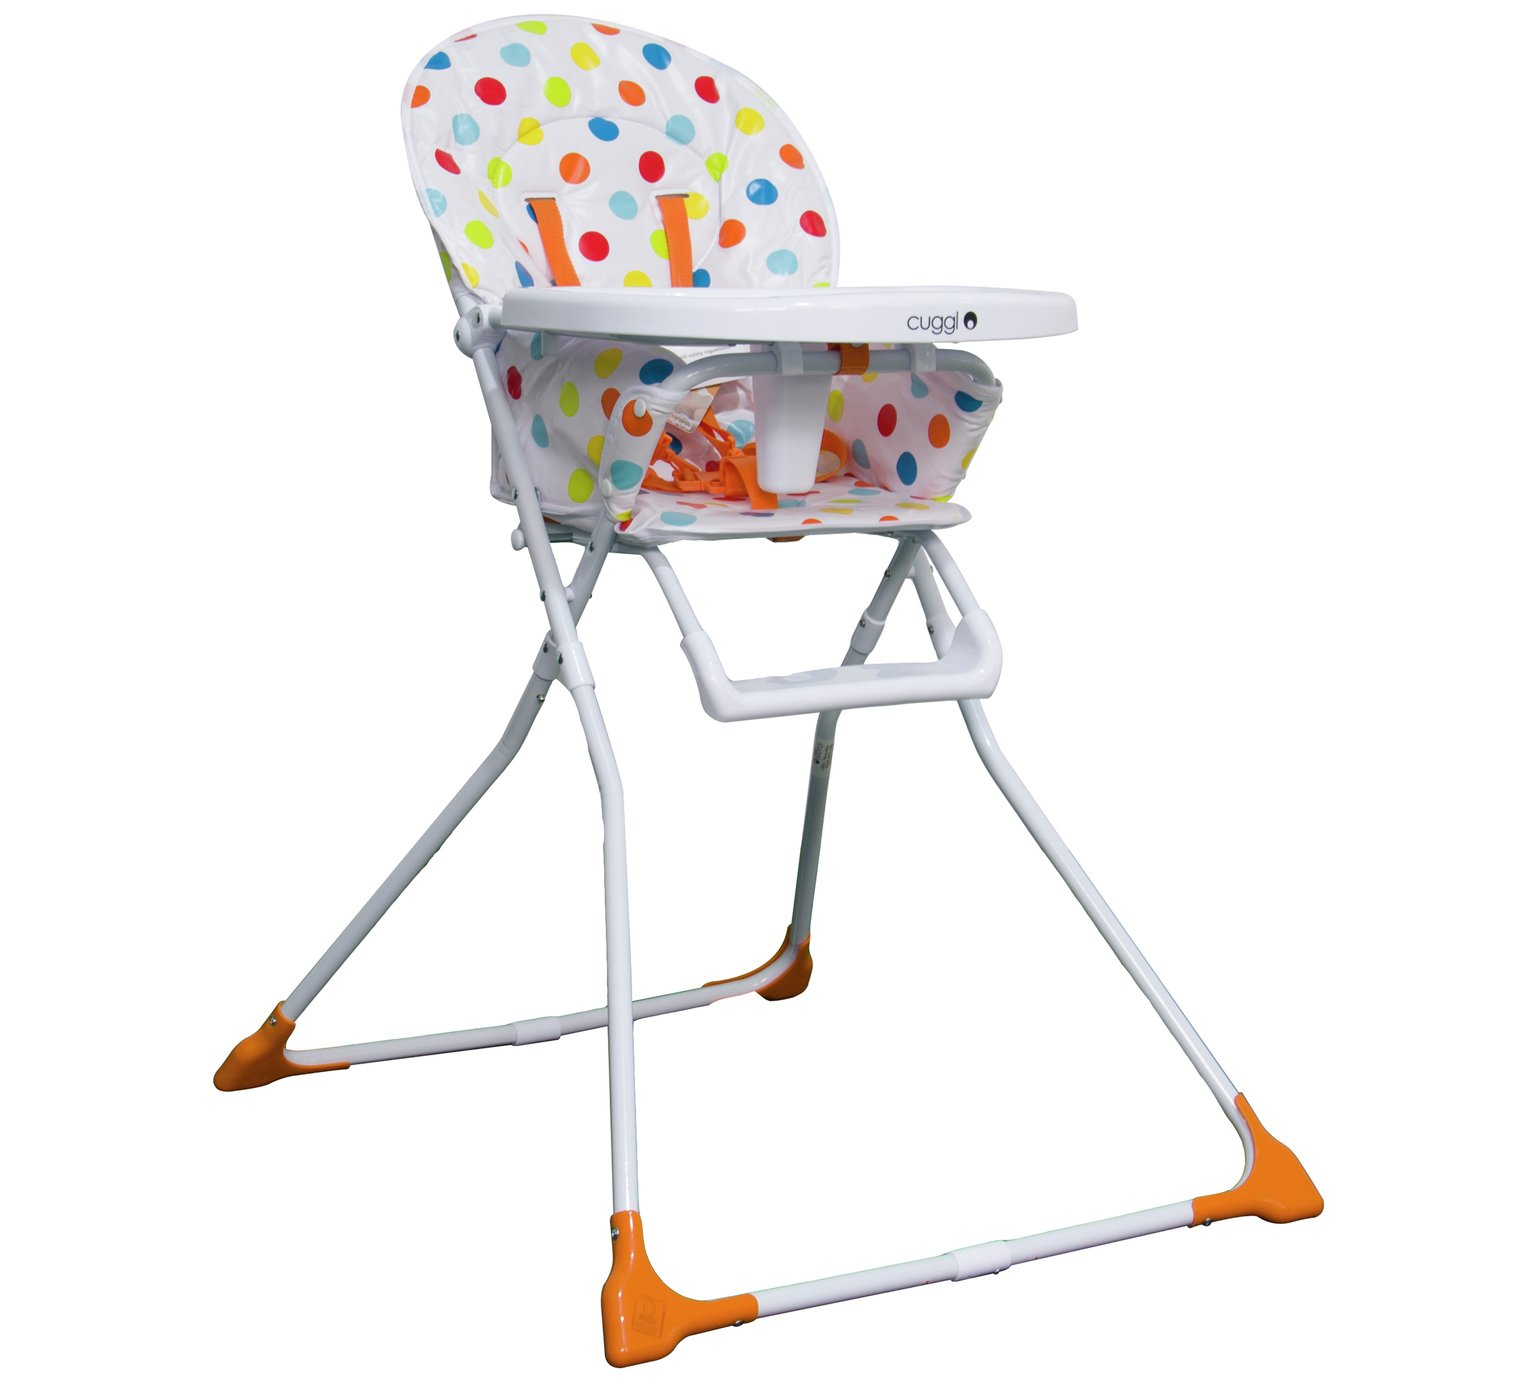 Cuggl Mushroom Folding Highchair